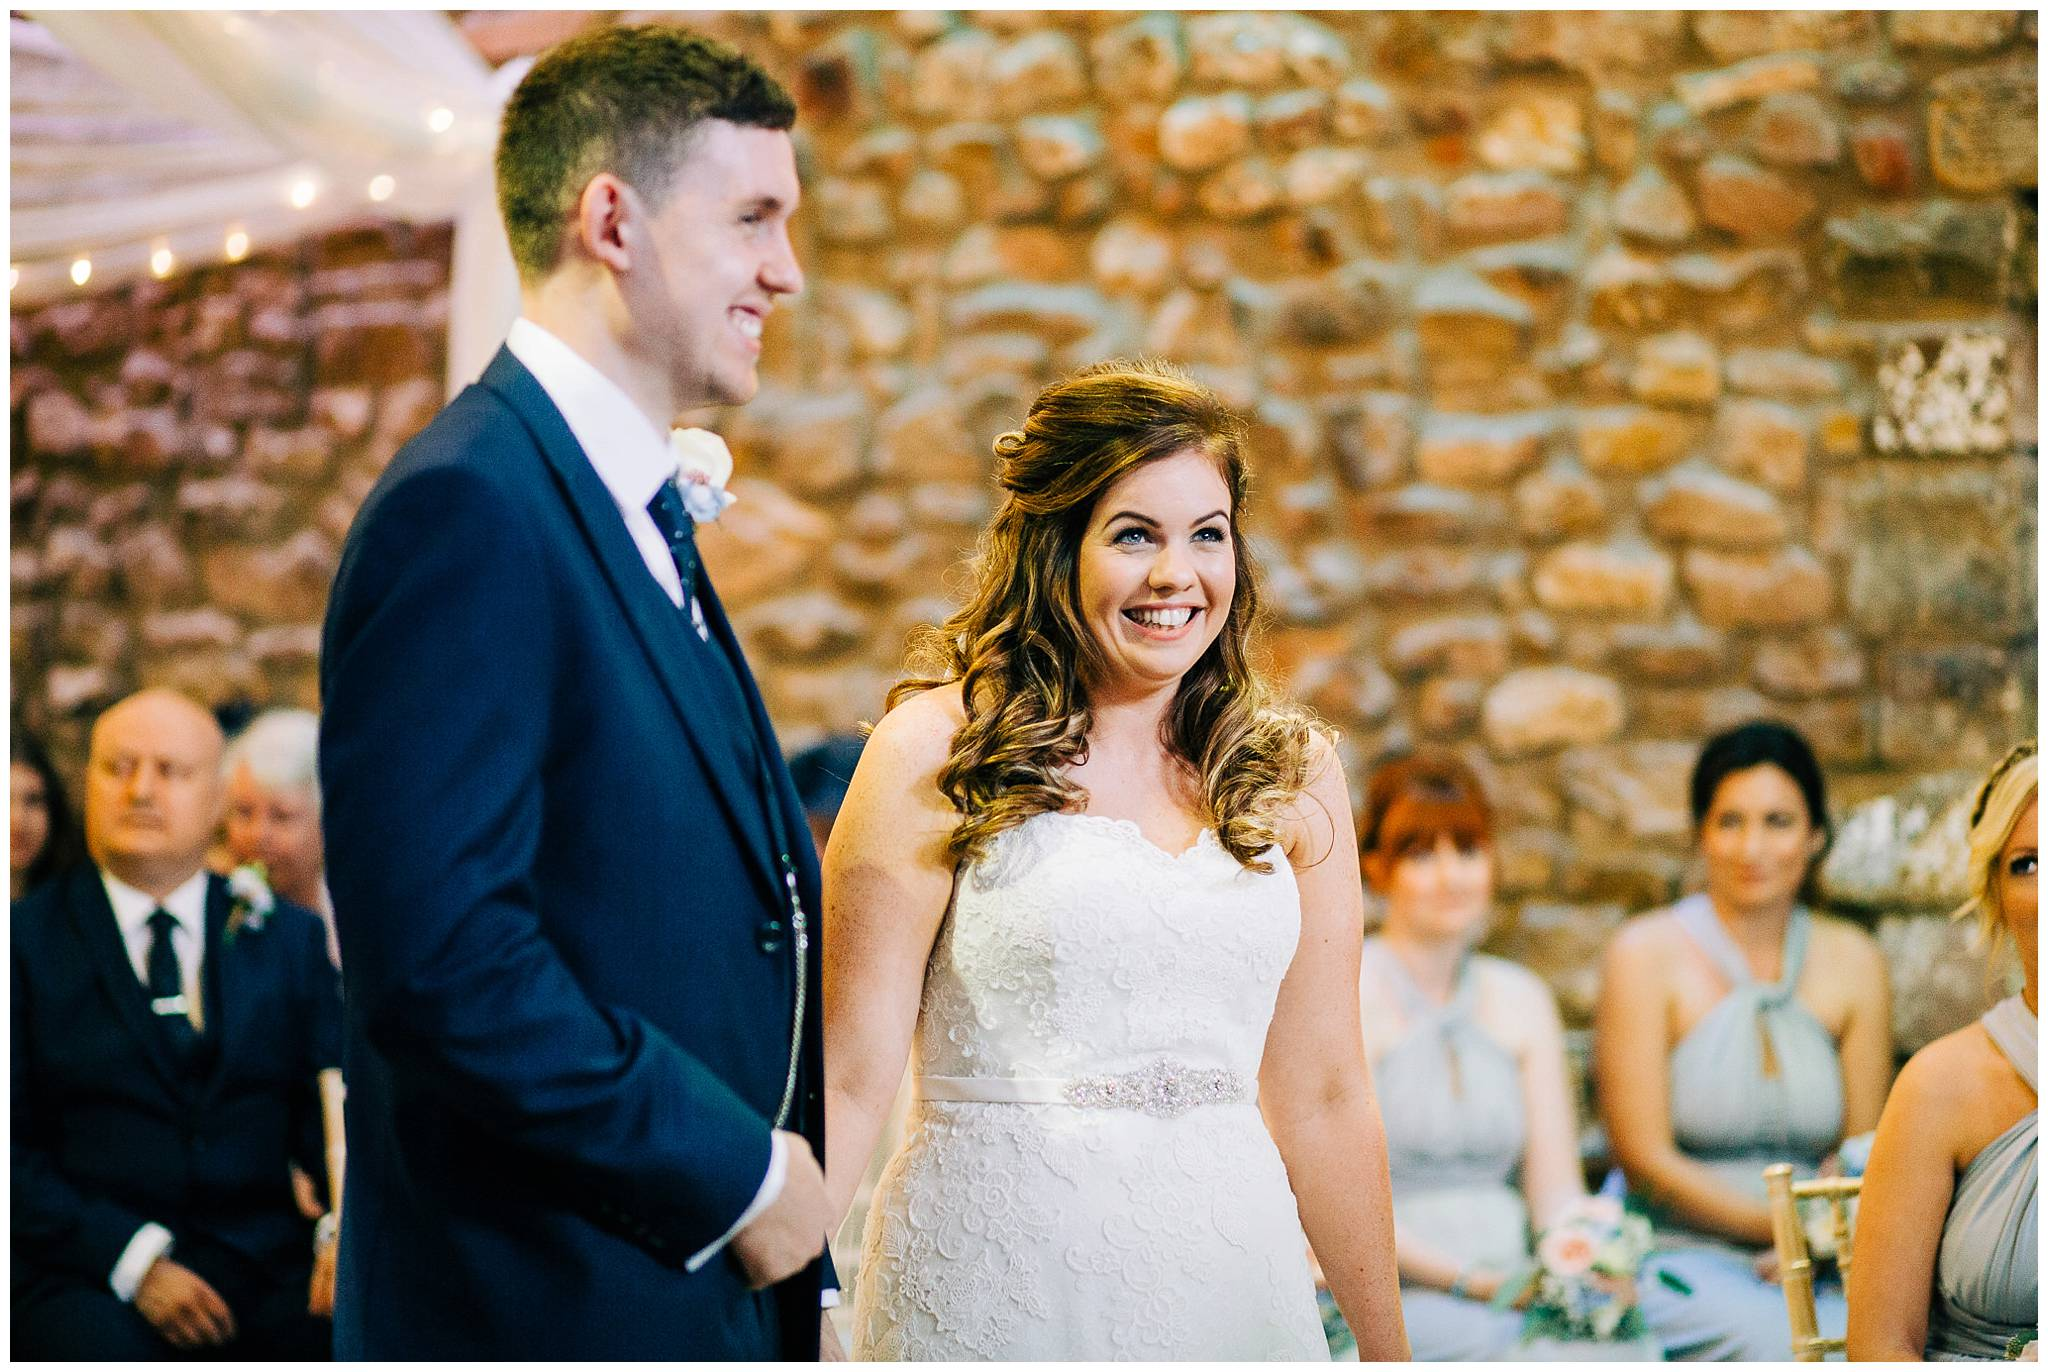 bride is excitedly smiling during ceremony at browsholme hall tithe barn